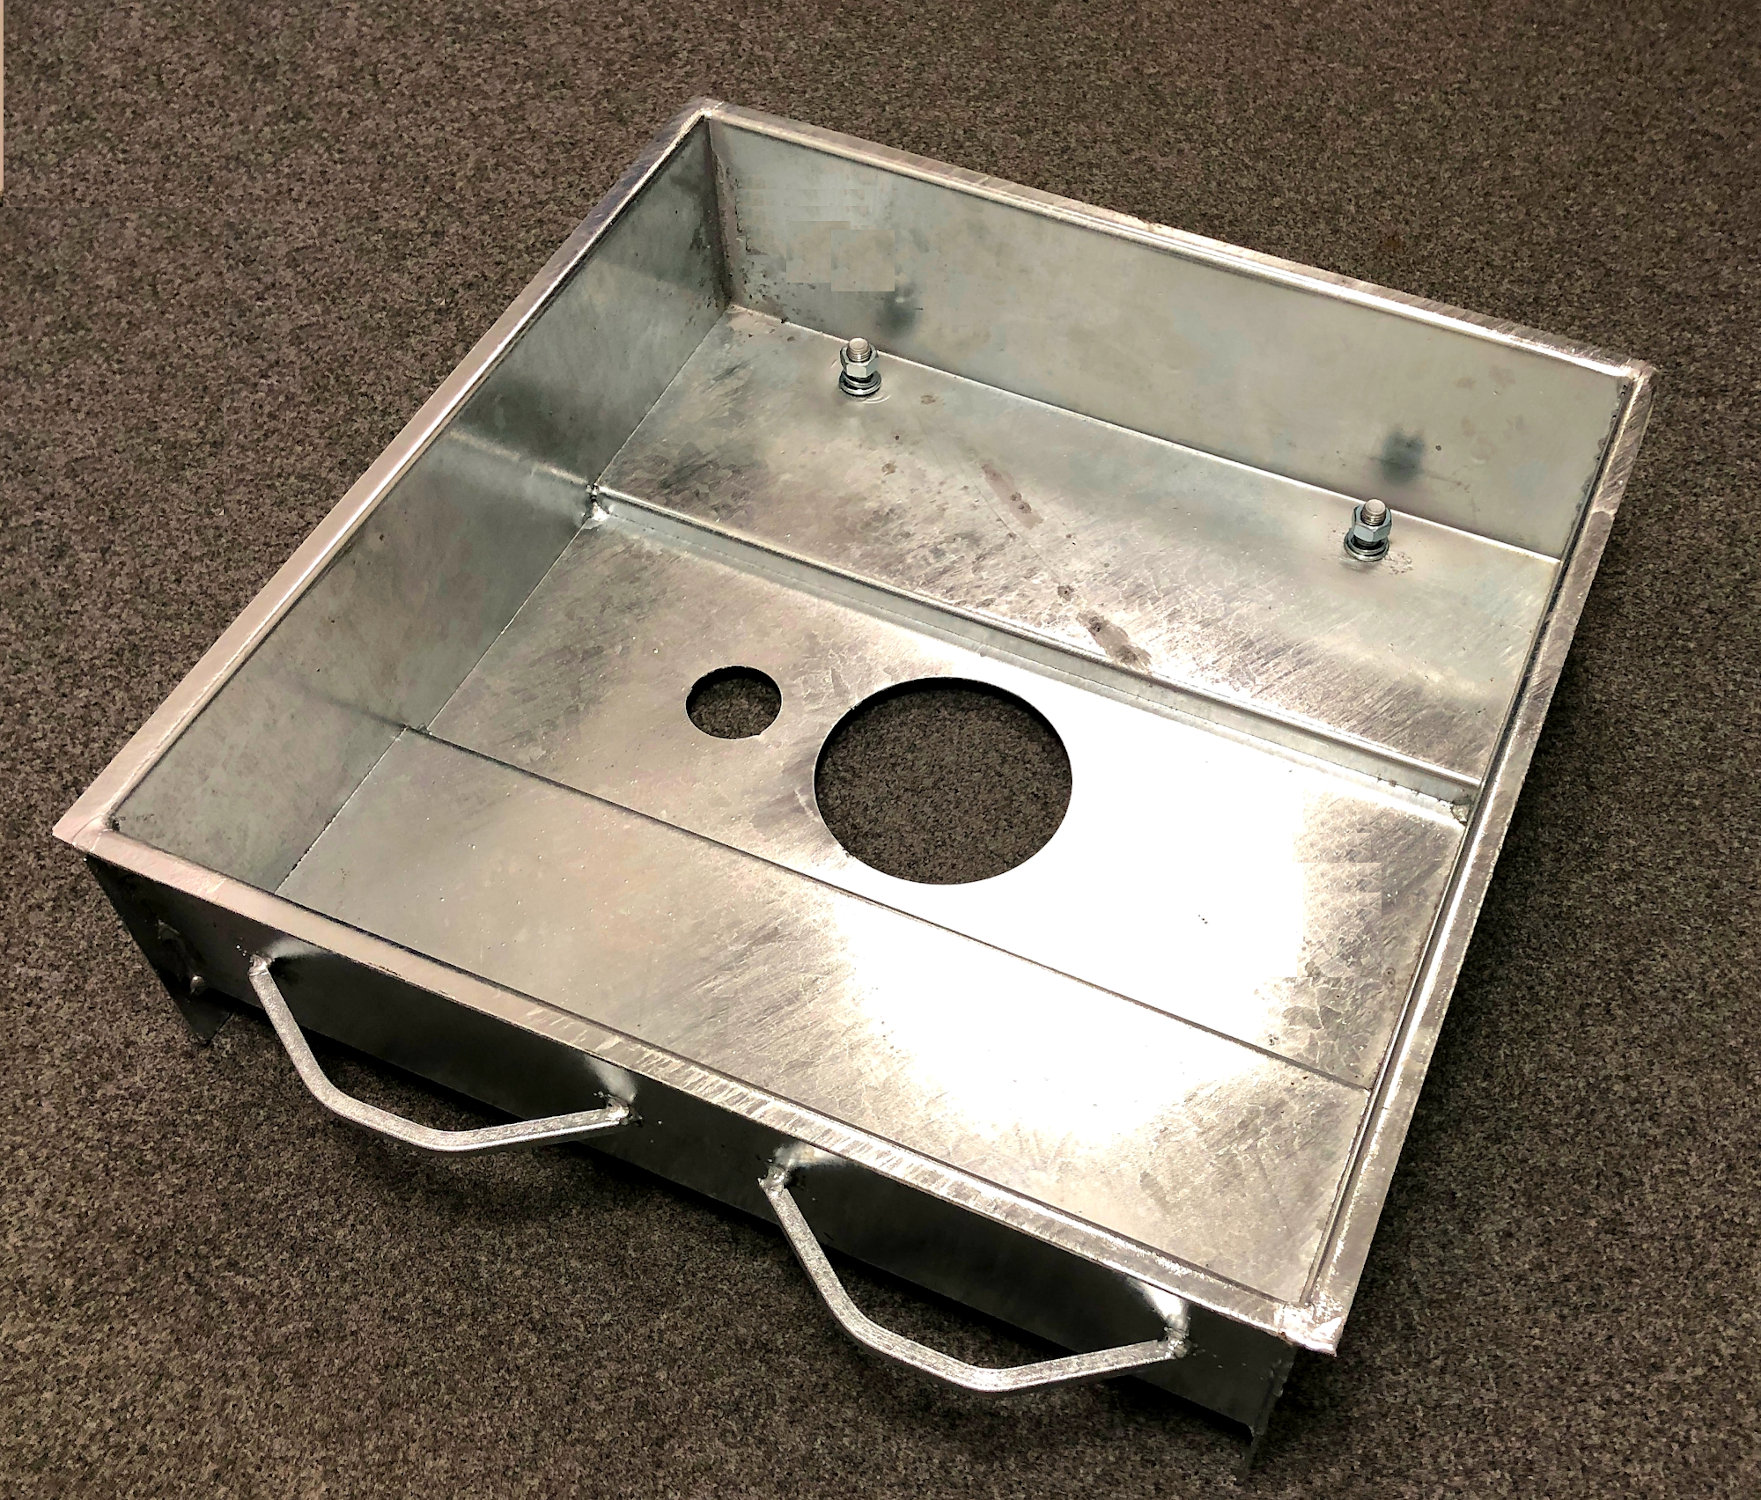 Hot-dip galvanized Foundation Tray